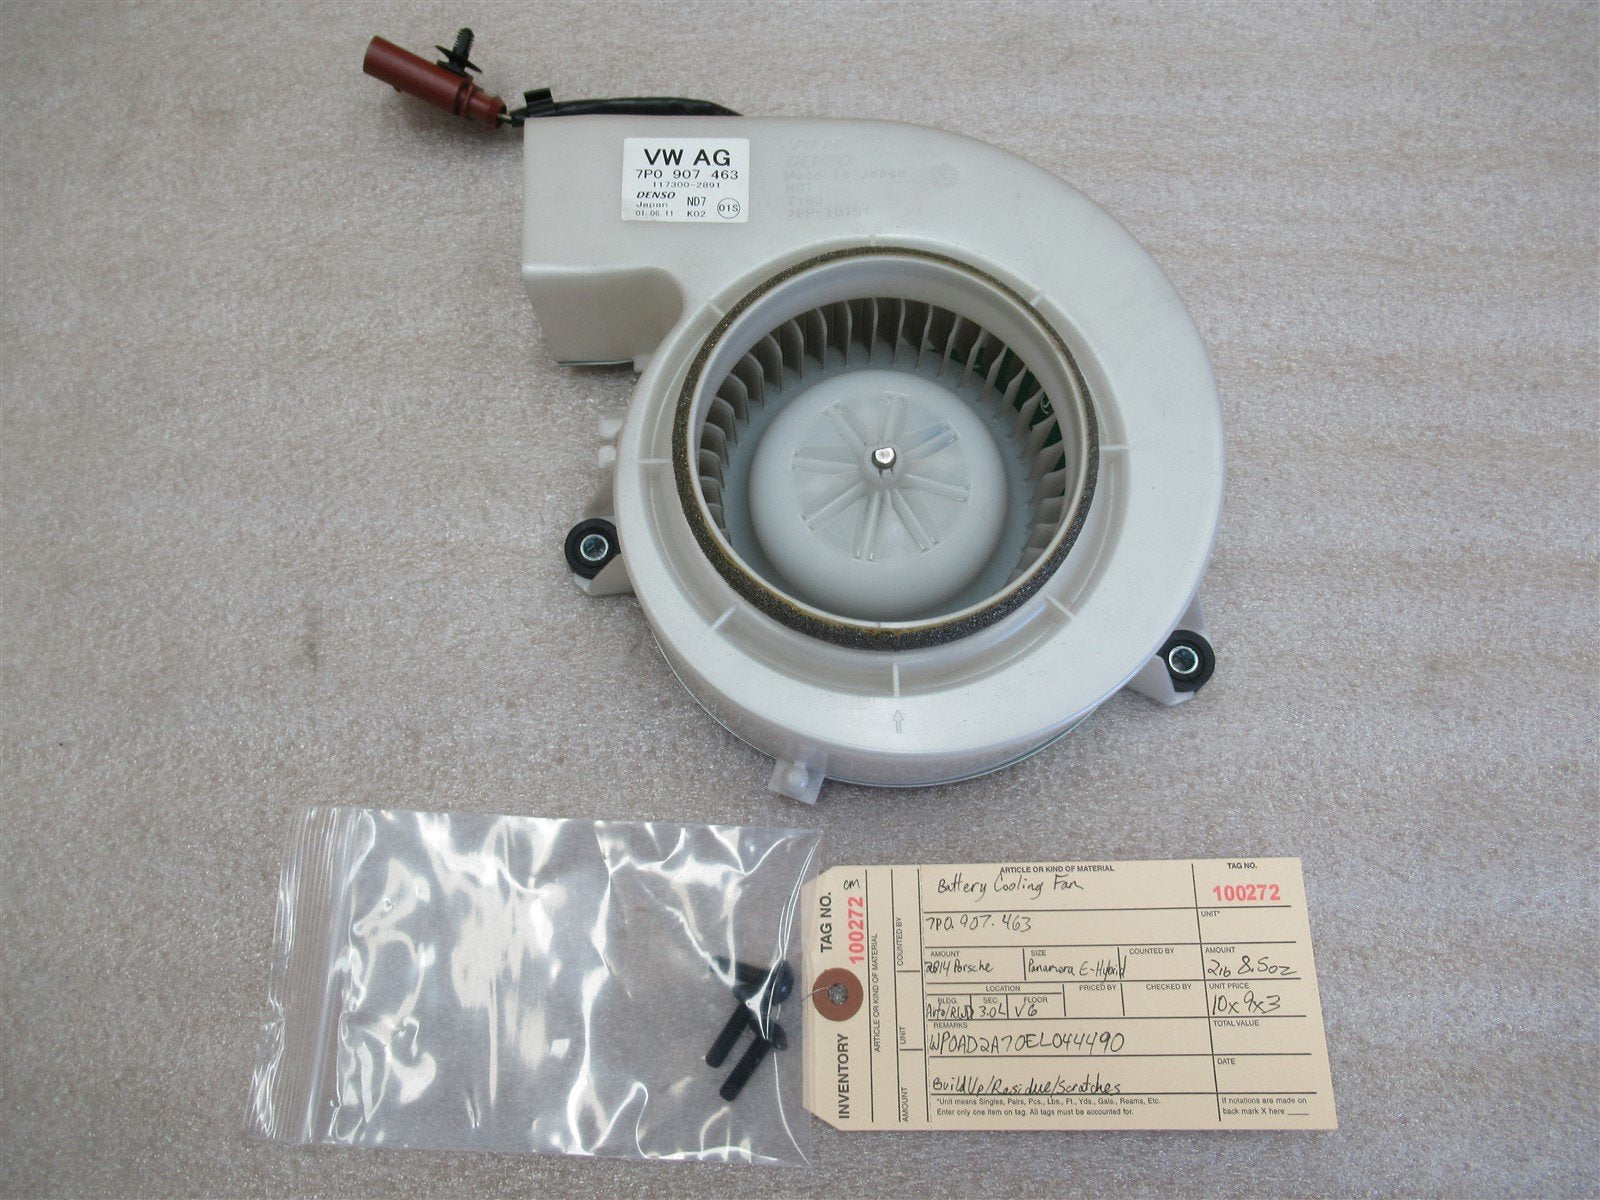 14 Panamera S E-Hybrid RWD Porsche 970 BATTERY BLOWER FAN MOTOR 7P0907463 43,200